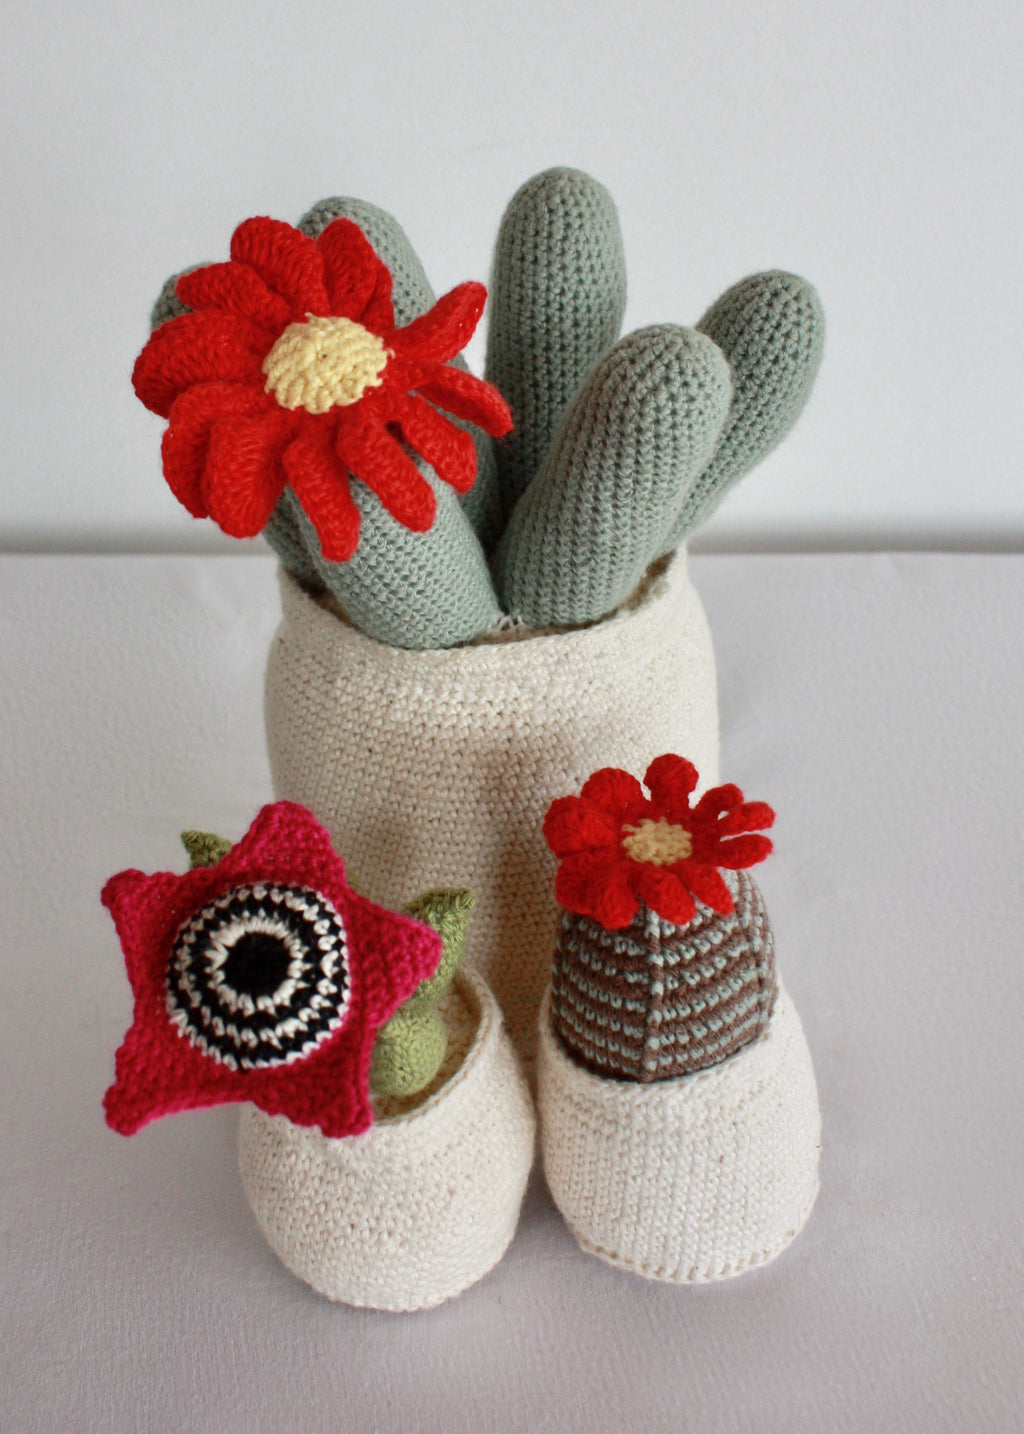 Flowering Crochet Cactus-Barrel Cactus with Red Daisy